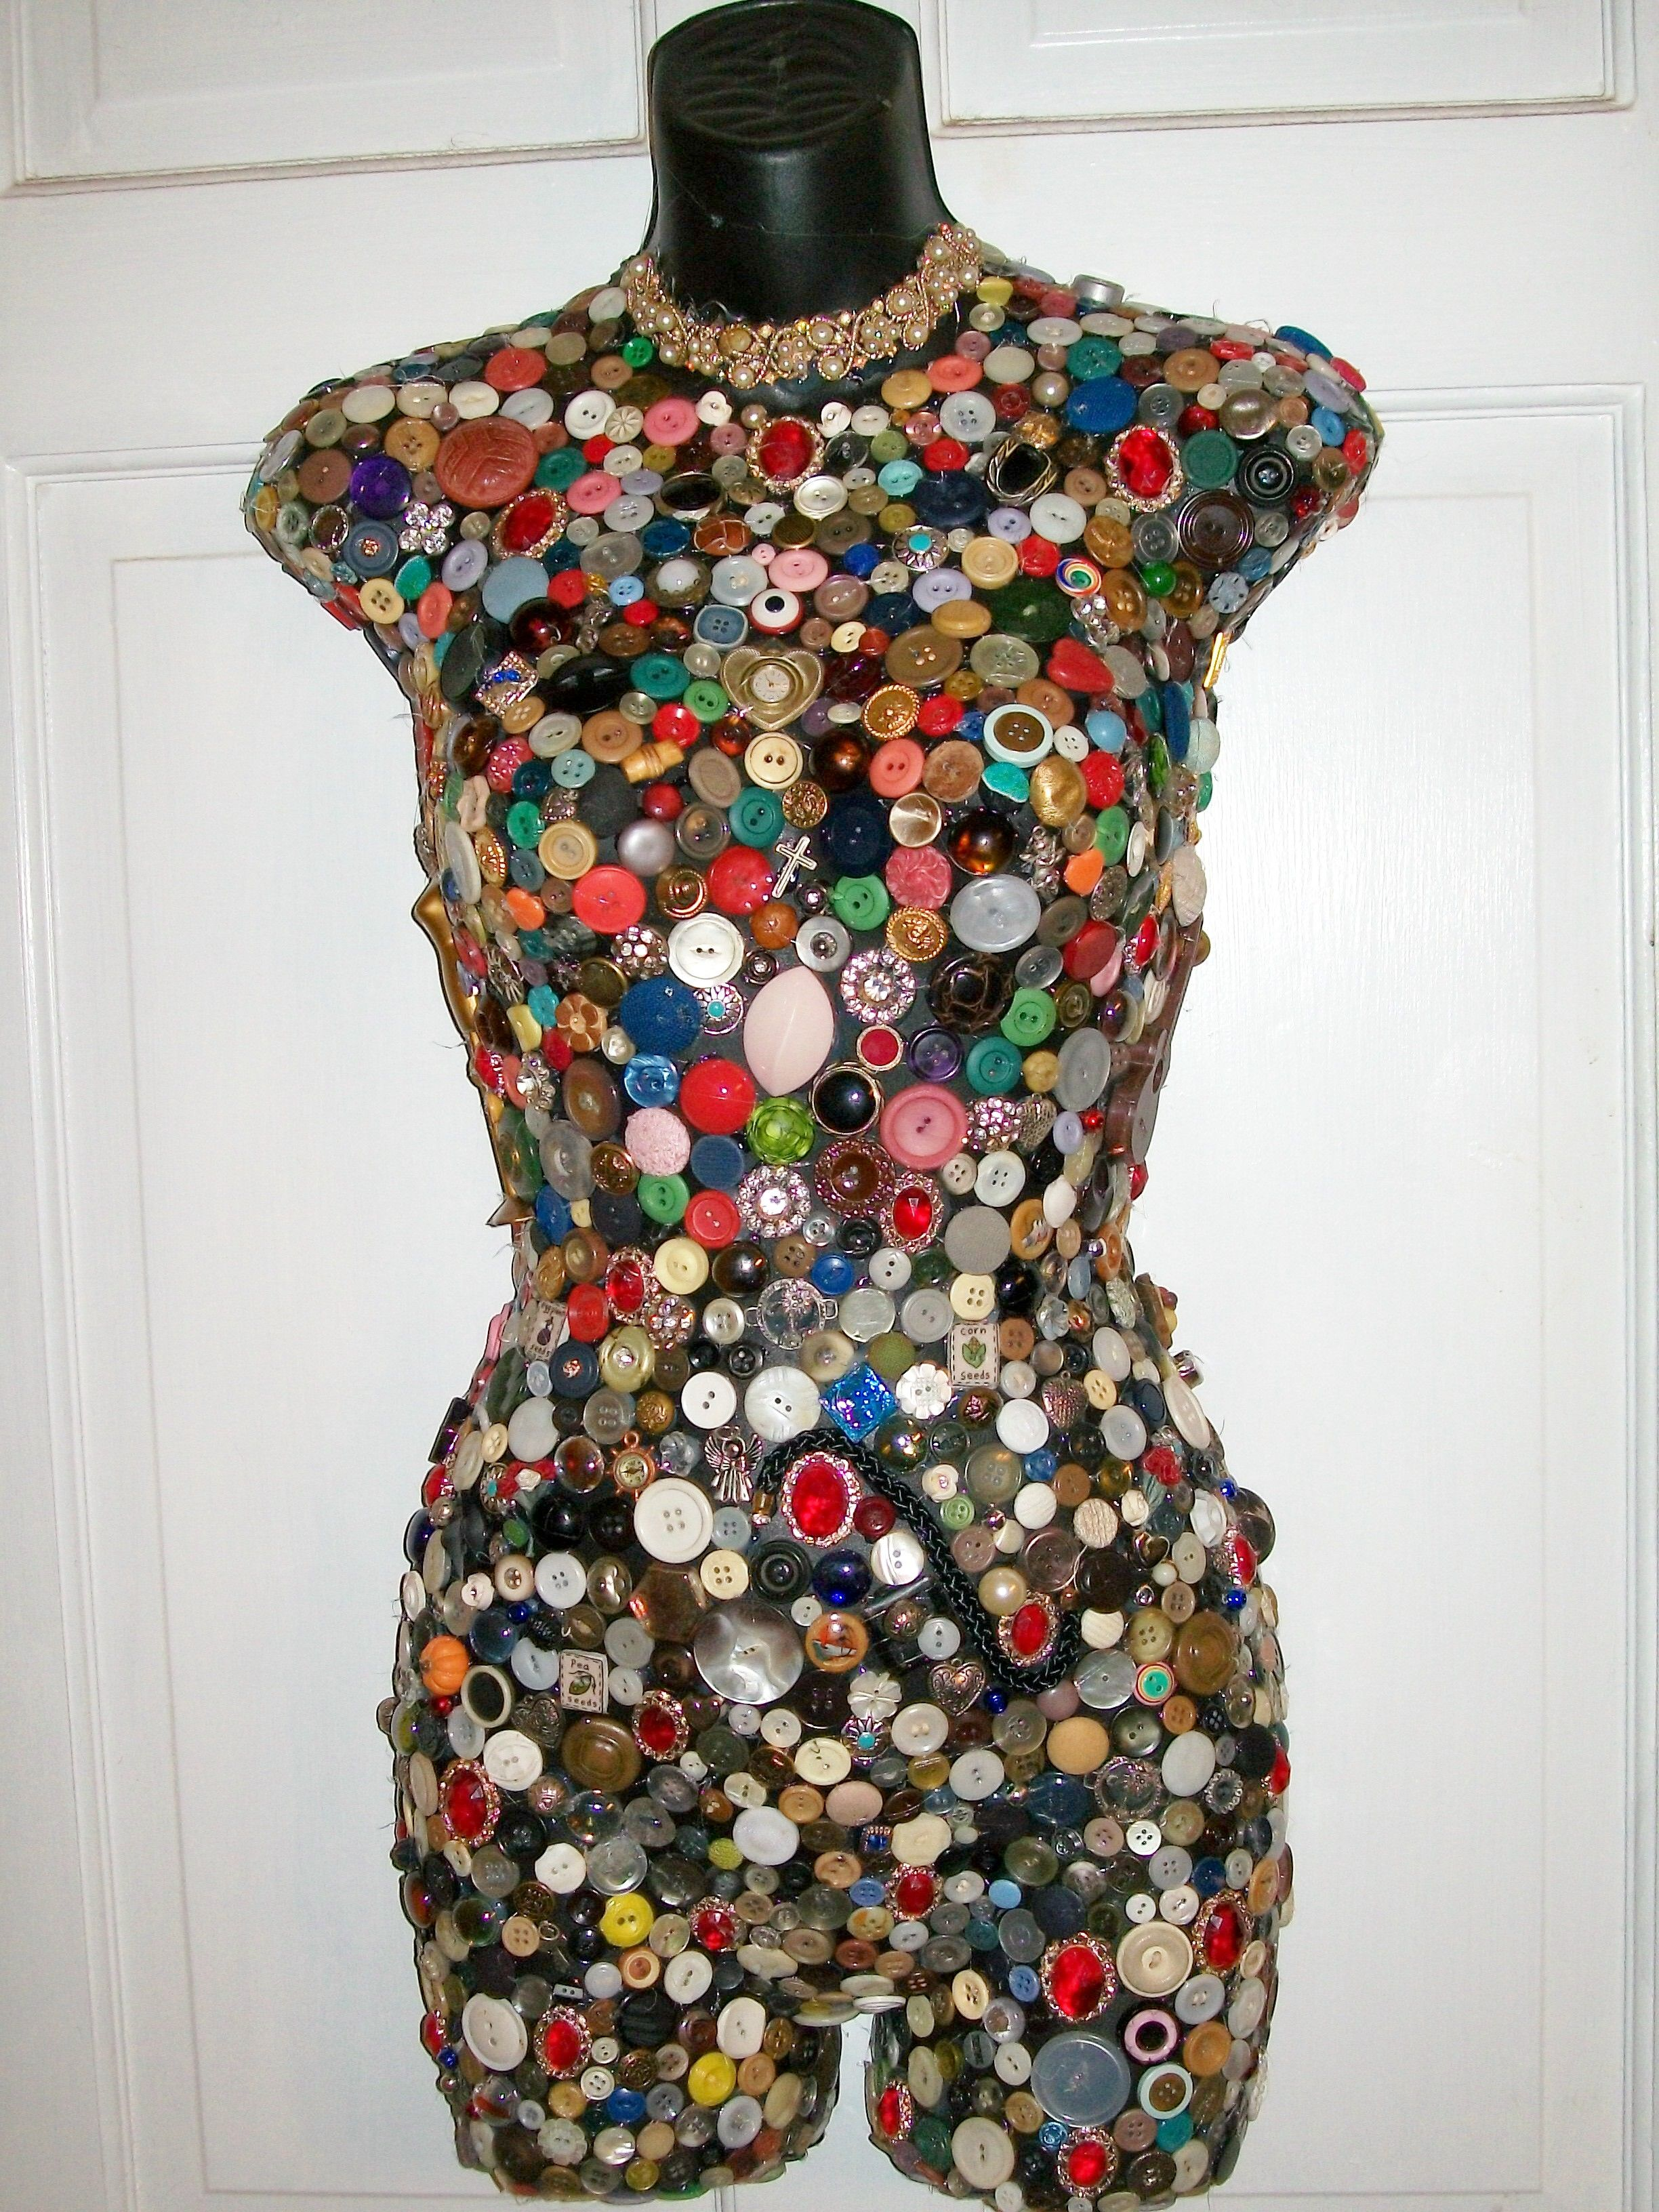 Mannequin Body covered in buttons jewelry and interesting little